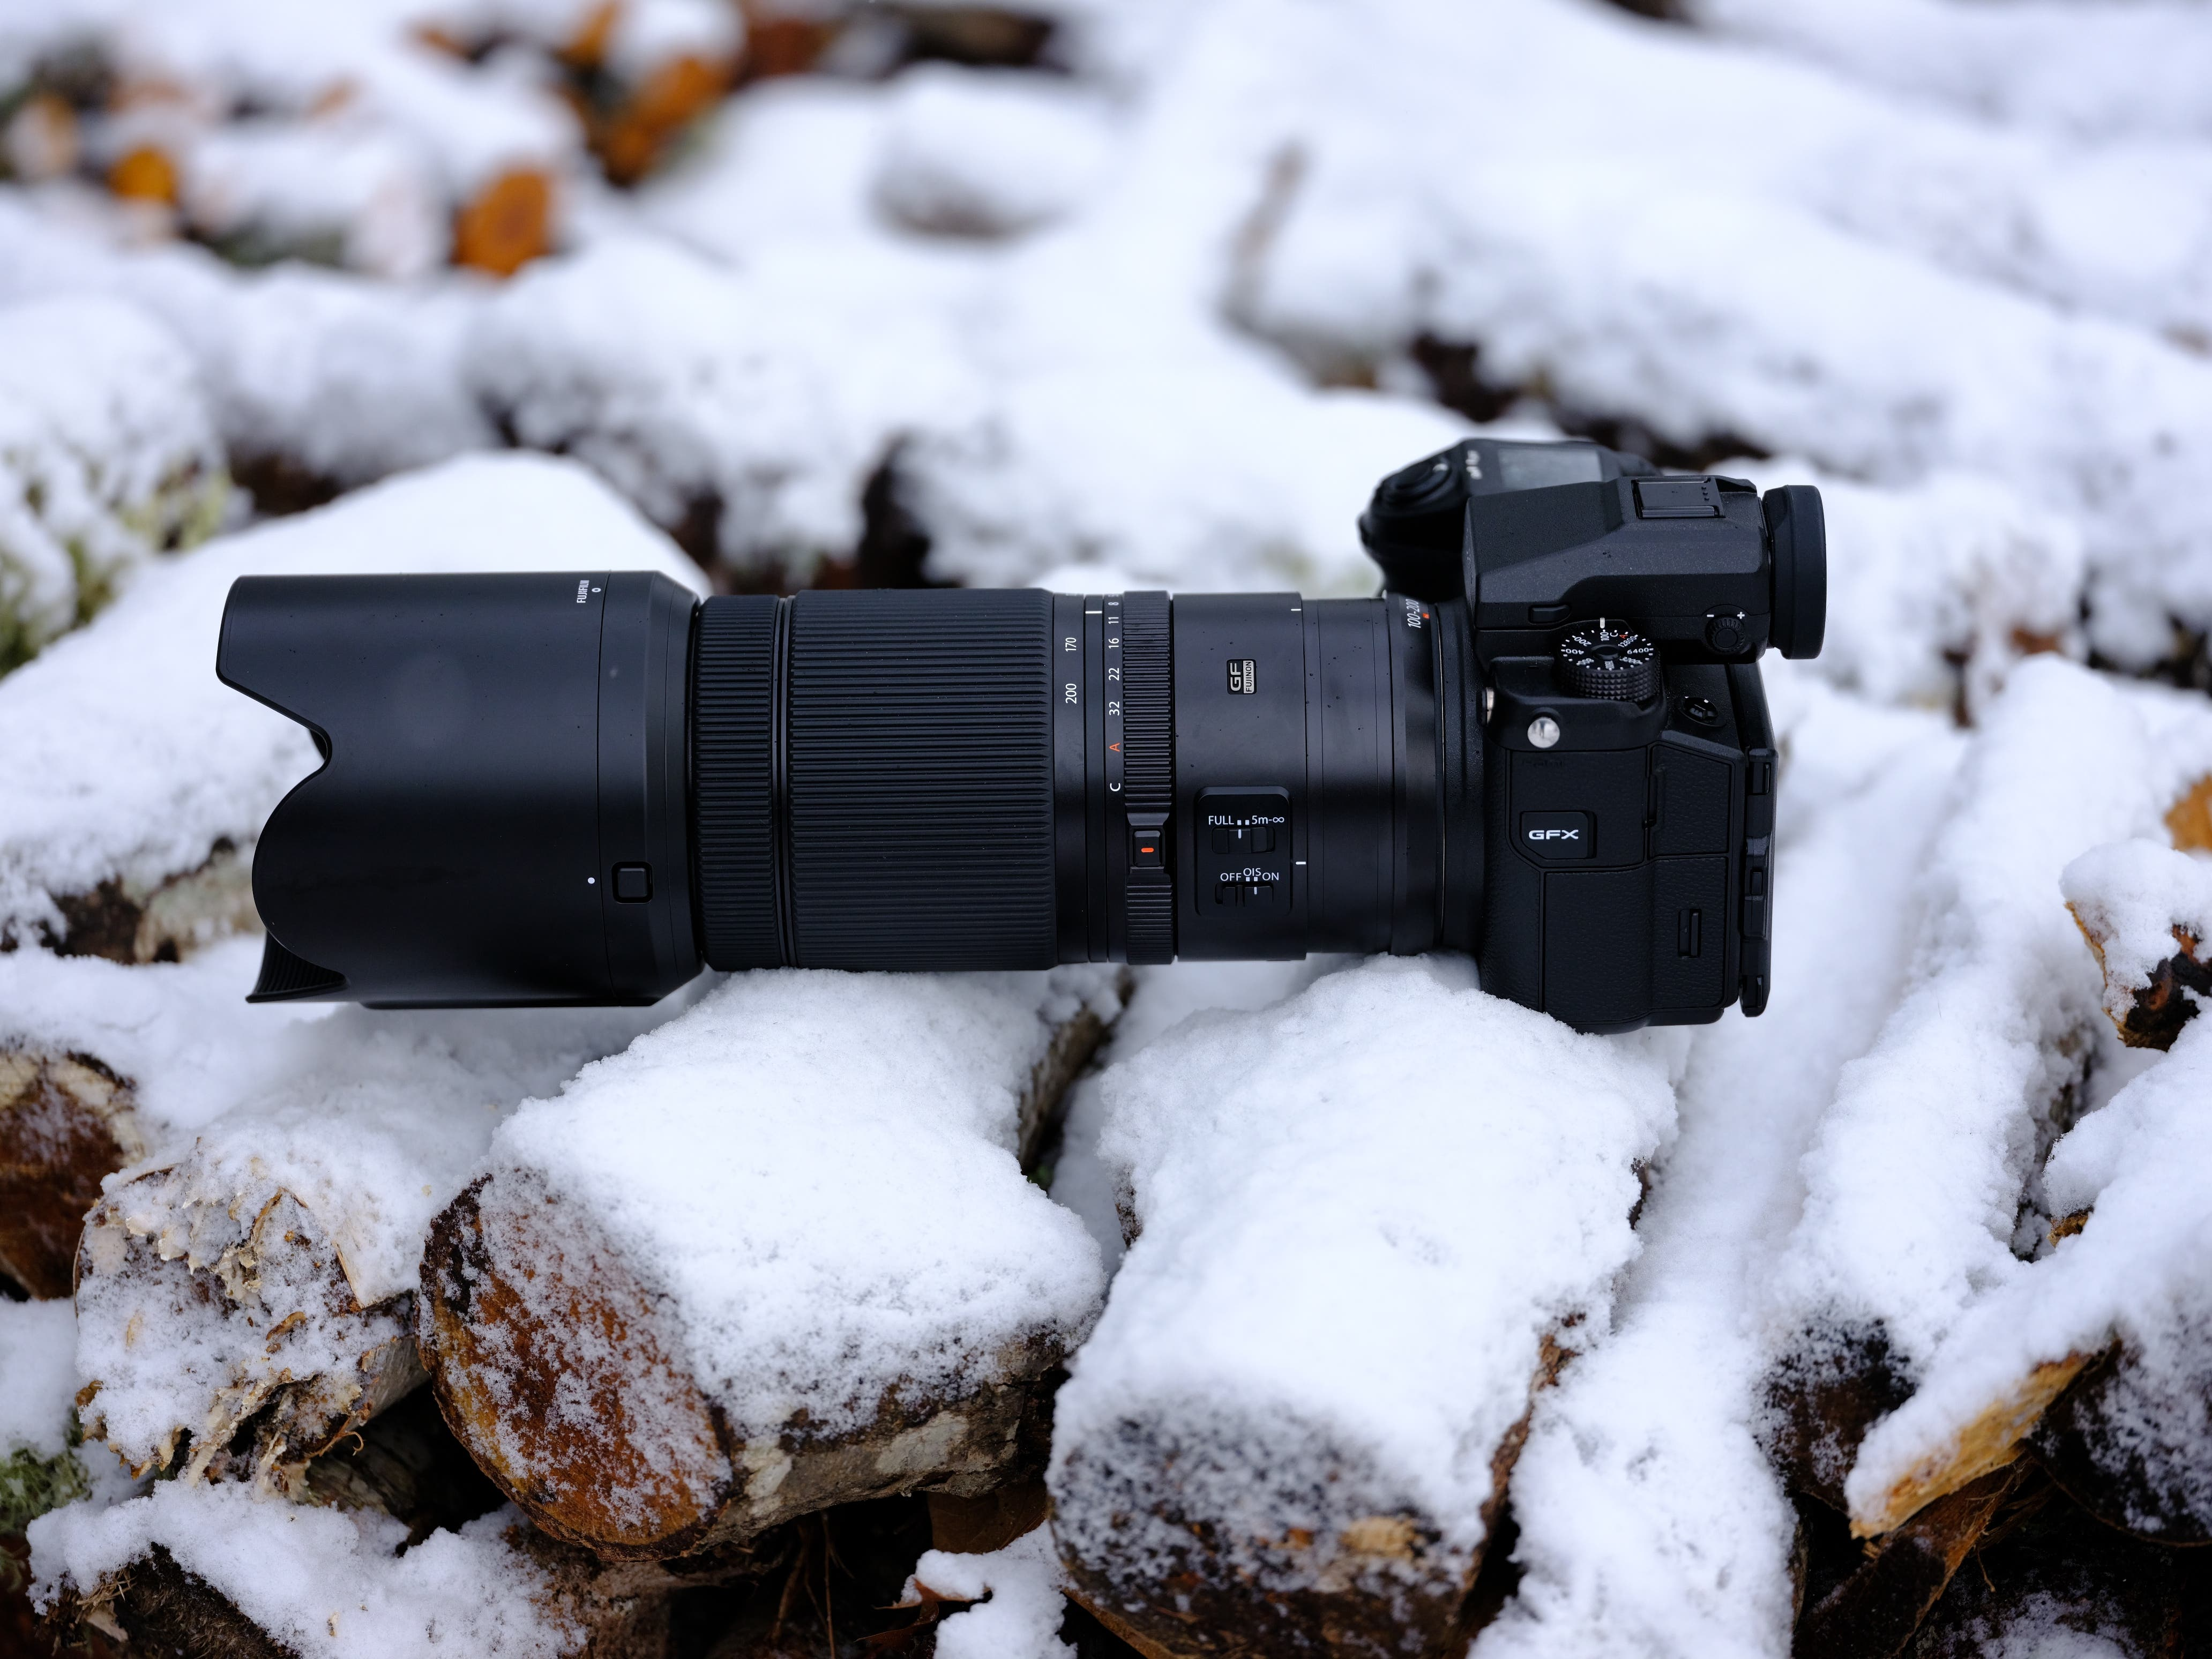 The Fujifilm GF 100-200mm F5.6 R LM OIS WR is for Photojournalism